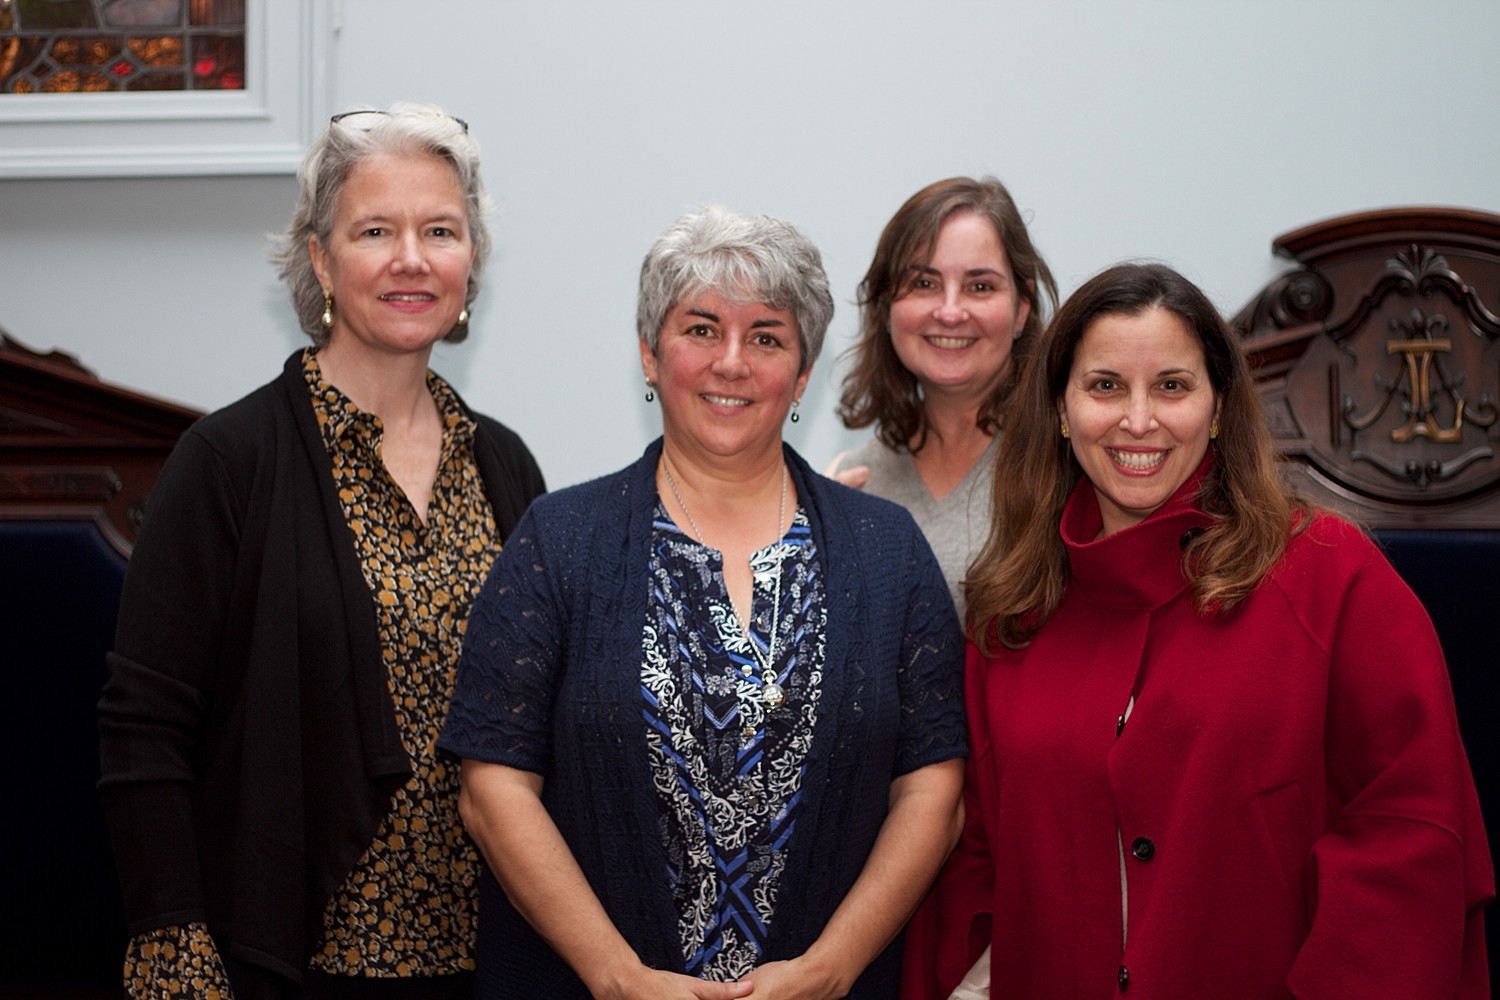 Raynham Hall's Harriet Gerard Clark, far left, joined historian Claire Bellerjeau and Theresa Skvarla and Kristen Jones at a lecture about Solomon Townsend.